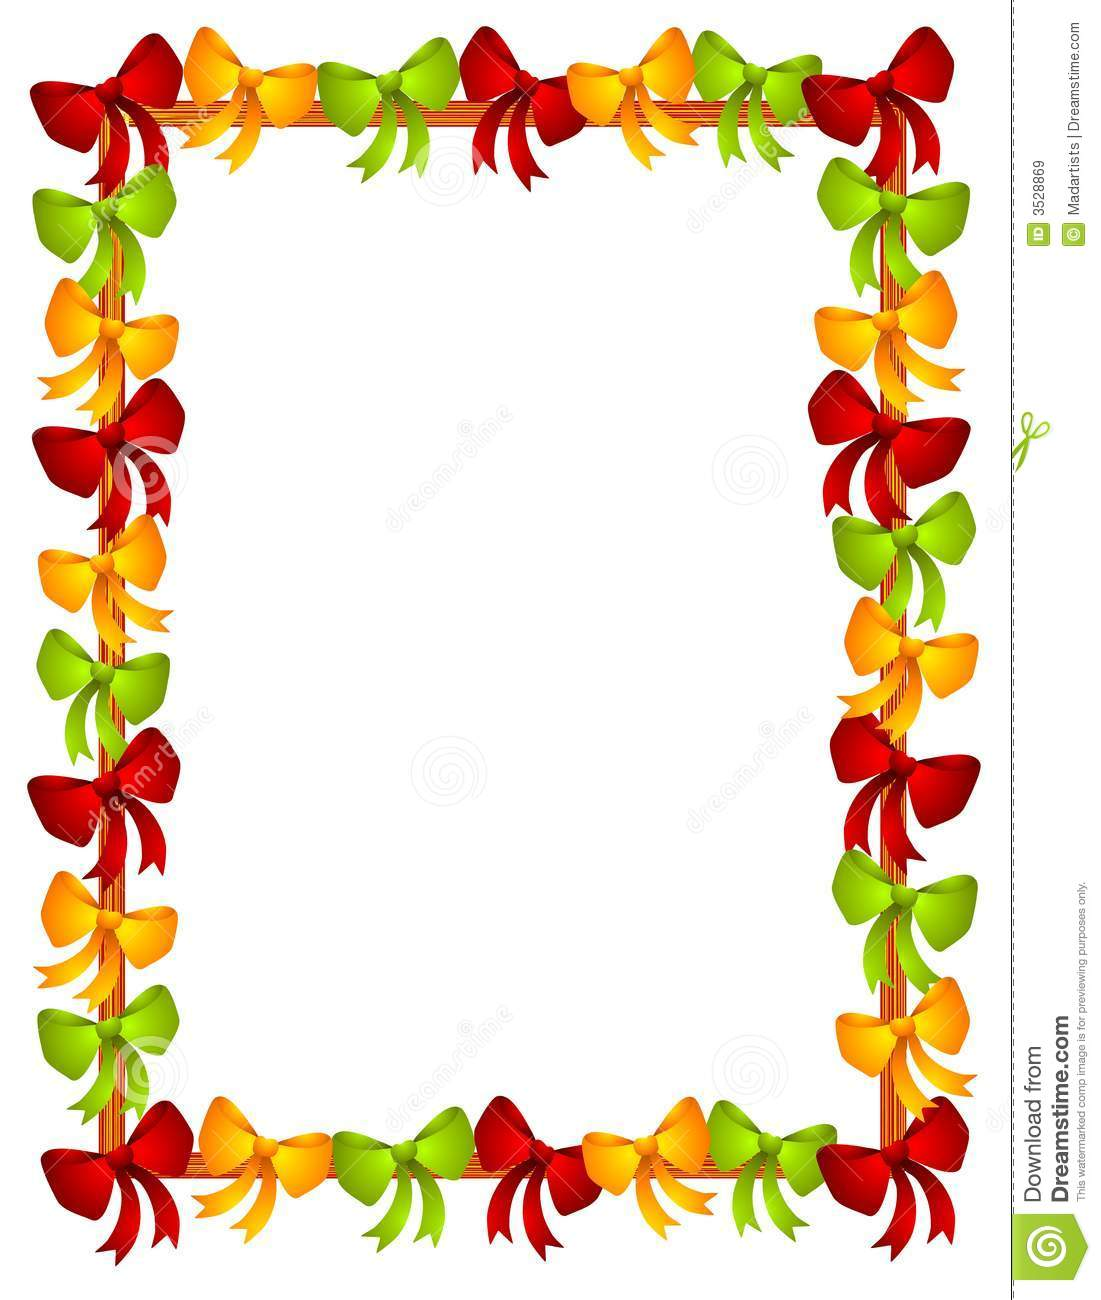 Free Clipart Christmas Borders | Free download best Free Clipart ...